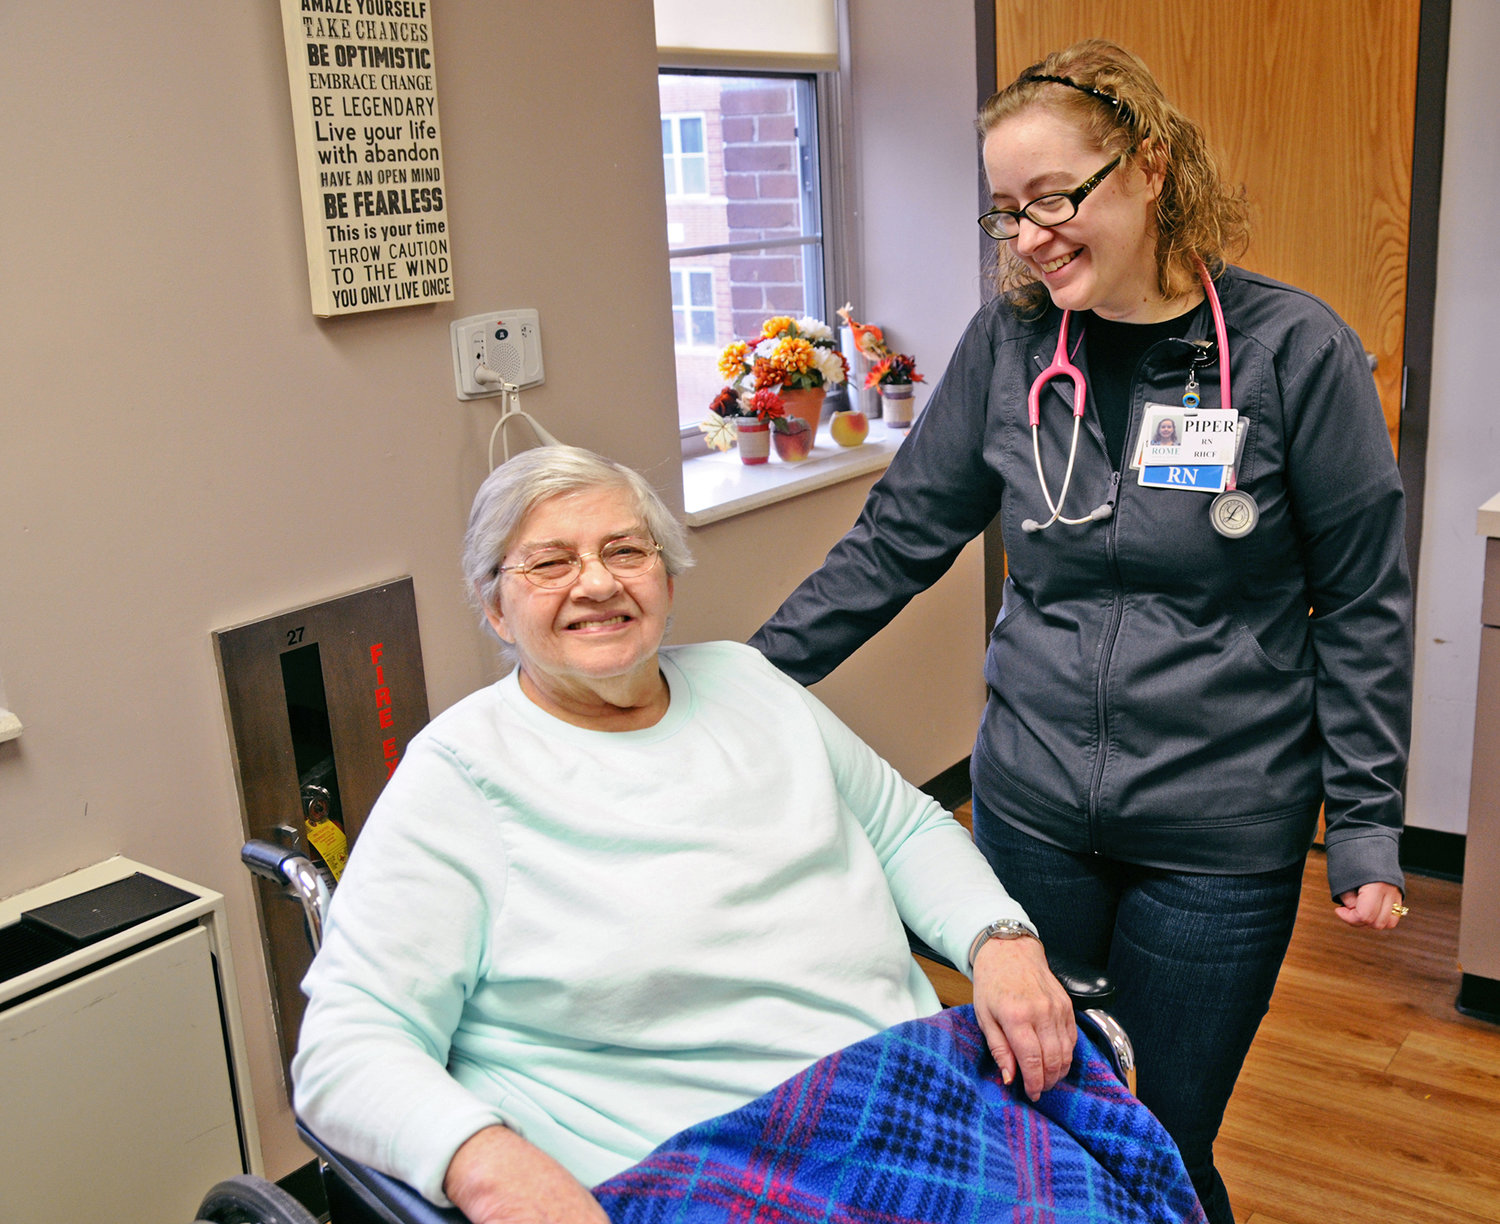 FIVE STAR CARE — Rome Memorial Hospital Residential Health Care (RHCF) resident Alma Jones shares a laugh with Piper Reese, RN, in the resident's activity room. The RHCF is the only skilled nursing facility in Oneida County to earn the highest 5-star rating from the Centers for Medicare & Medicaid Services (CMS) Nursing Home Compare.